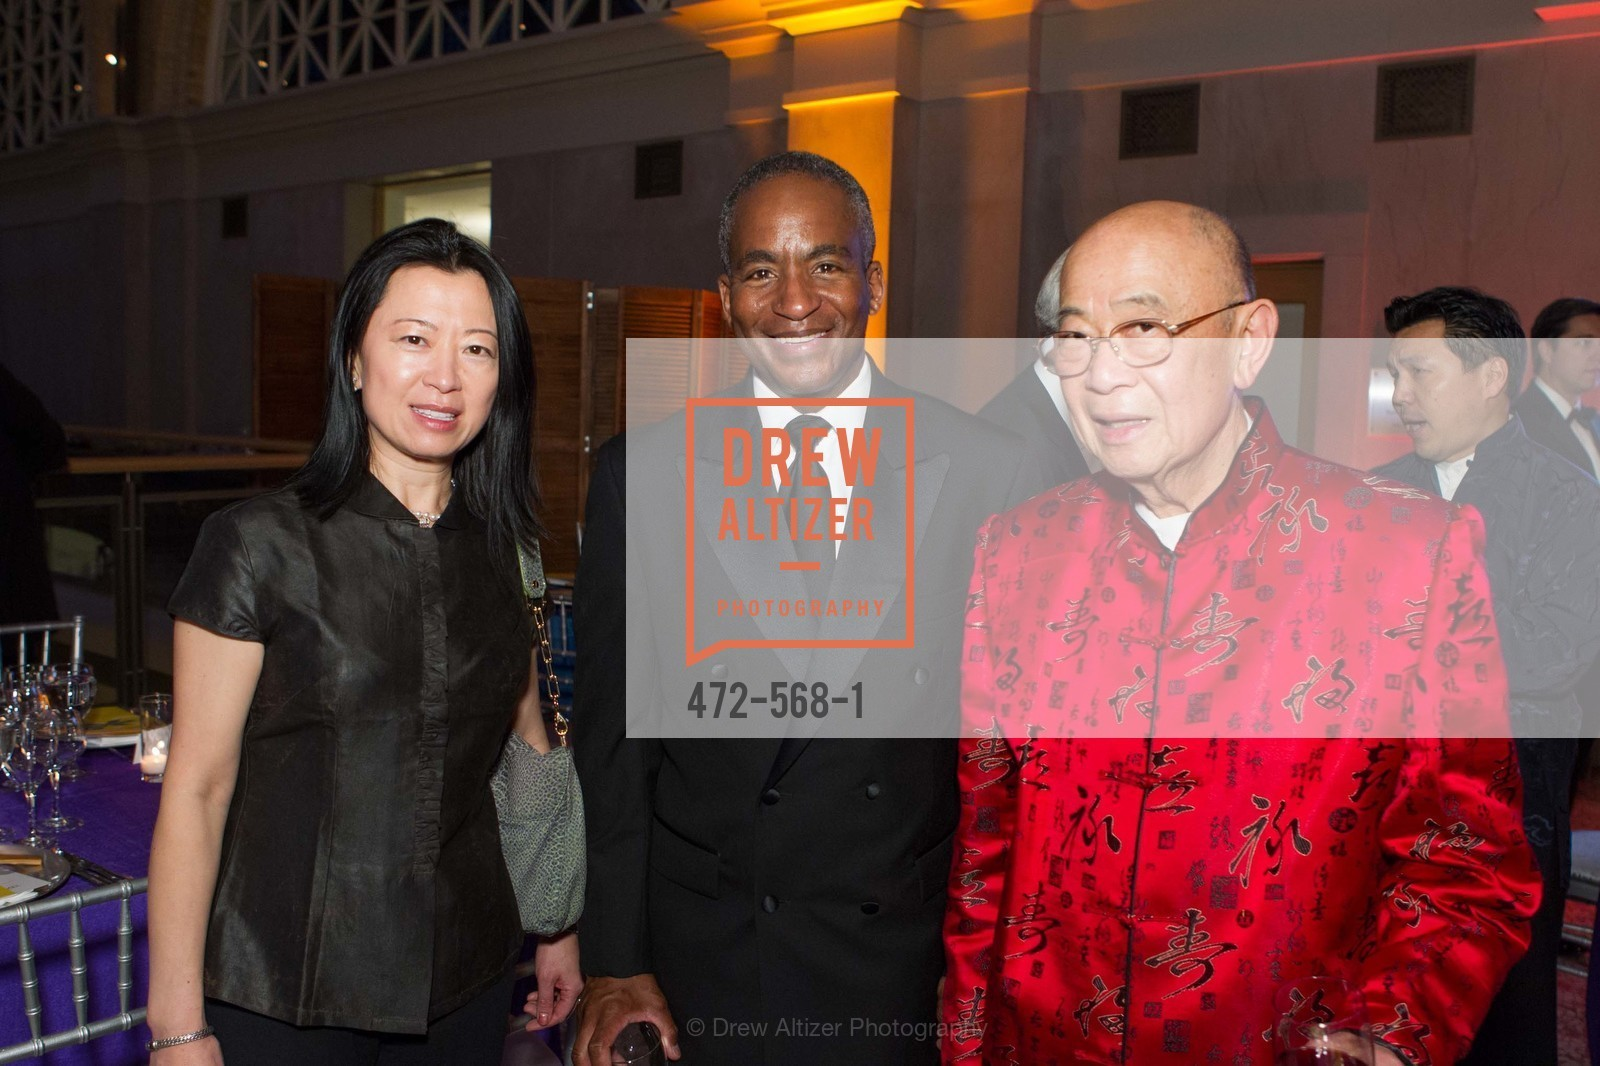 Susan Wu, Lionel Johnson, Dennis Wu, SOTHEBY'S  Hosts a Private Viewing of Highlights from the Collection of MRS. PAUL MELLON, US, September 17th, 2014,Drew Altizer, Drew Altizer Photography, full-service agency, private events, San Francisco photographer, photographer california